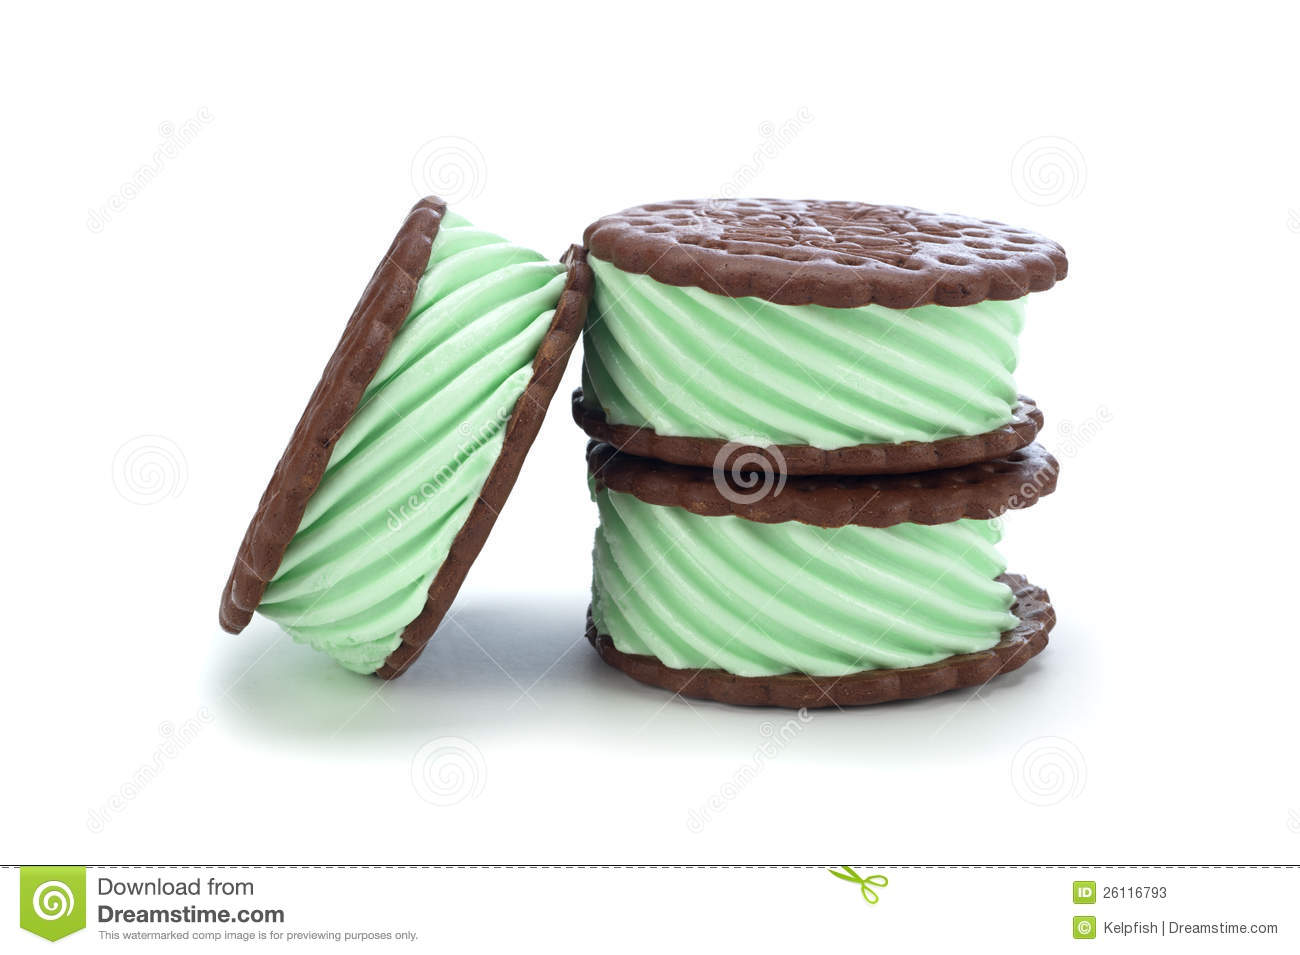 Mint Ice Cream Sanswich Stock Photos - Image: 26116793